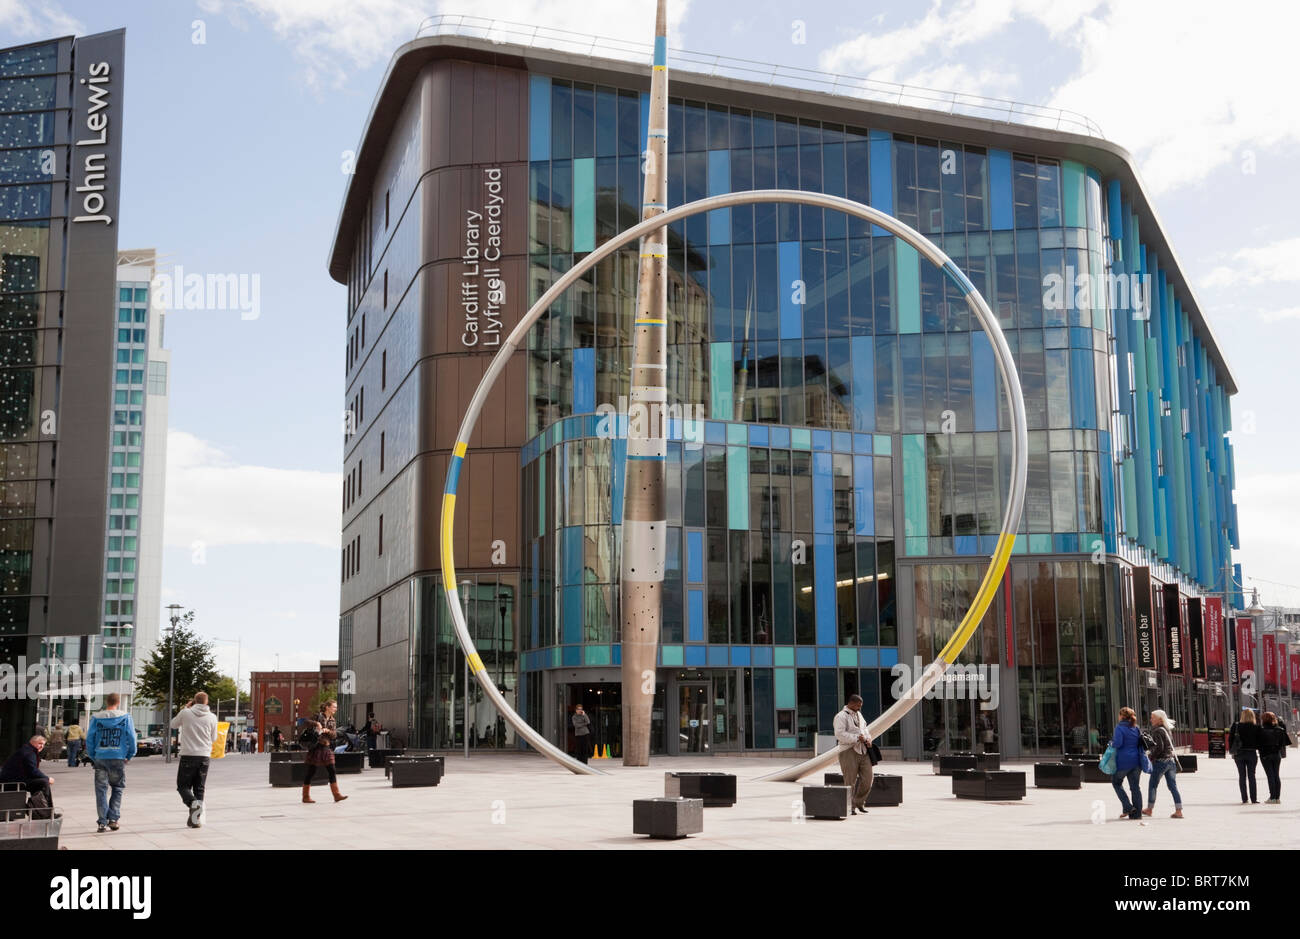 Street scene outside new public Central Library and modern metal Alliance Sculpture in pedestrian precinct. Cardiff - Stock Image